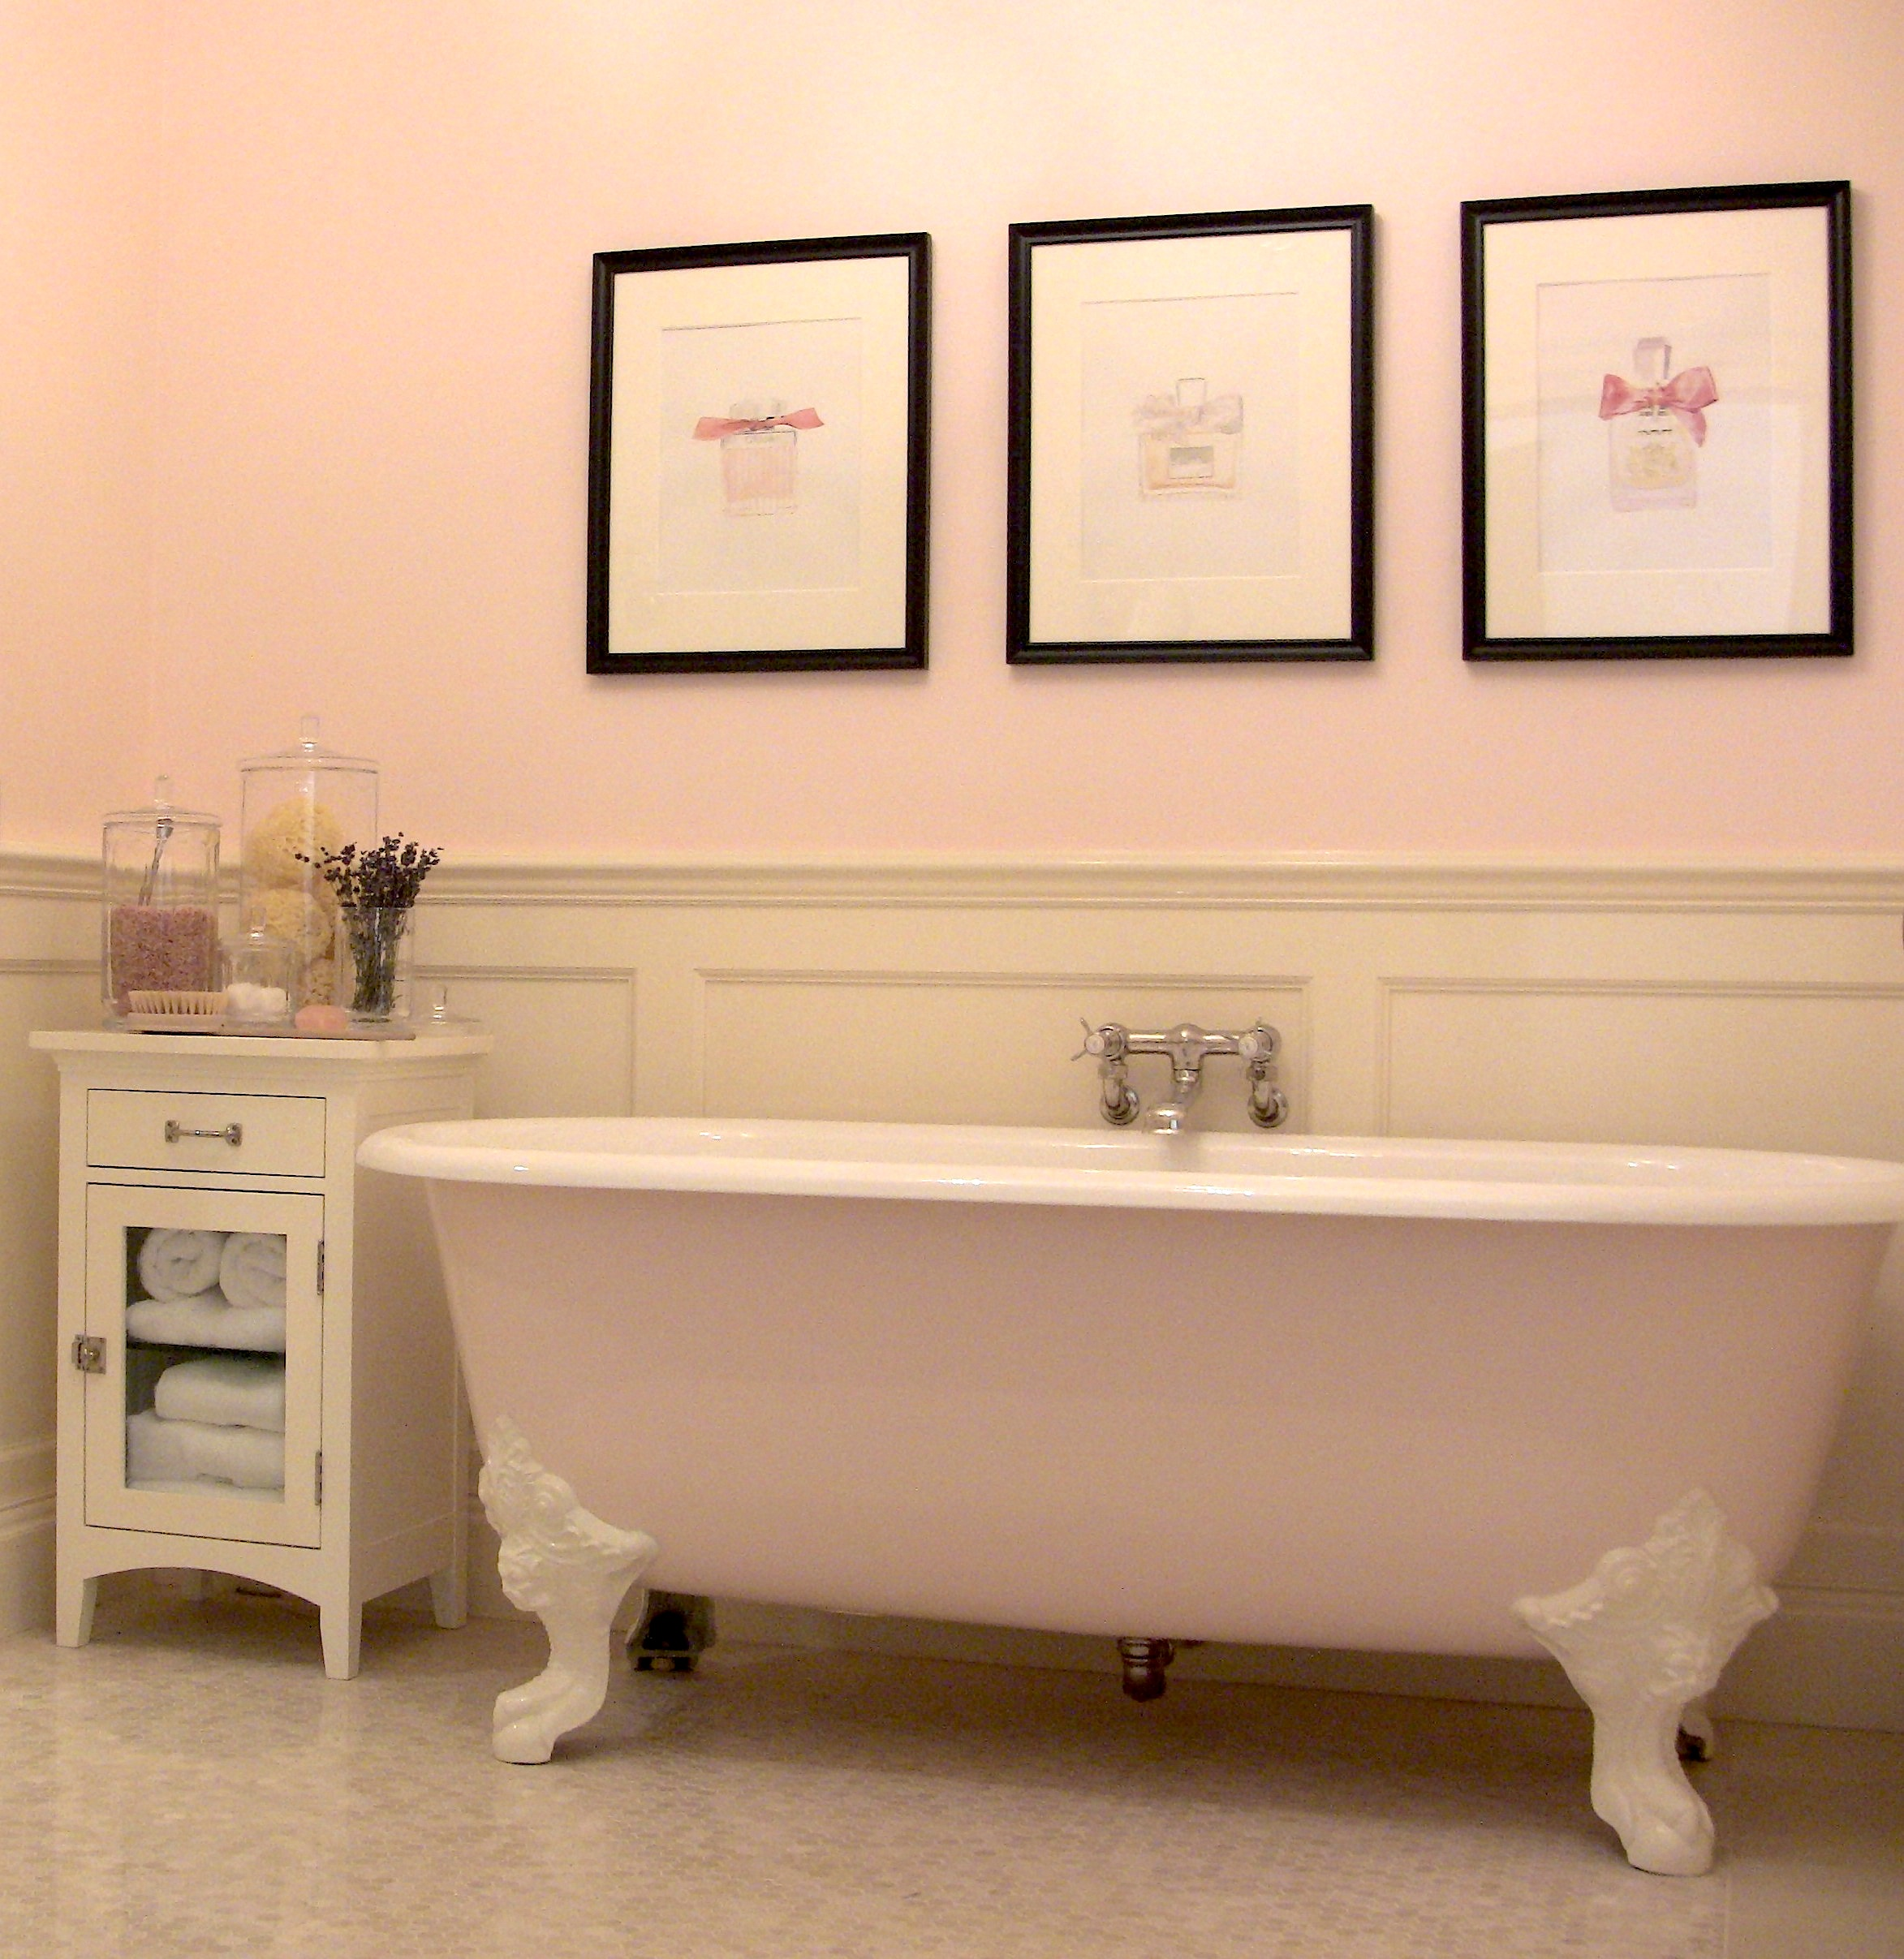 Bathroom for the bedroom above includes an imported English cast iron claw-footed tub